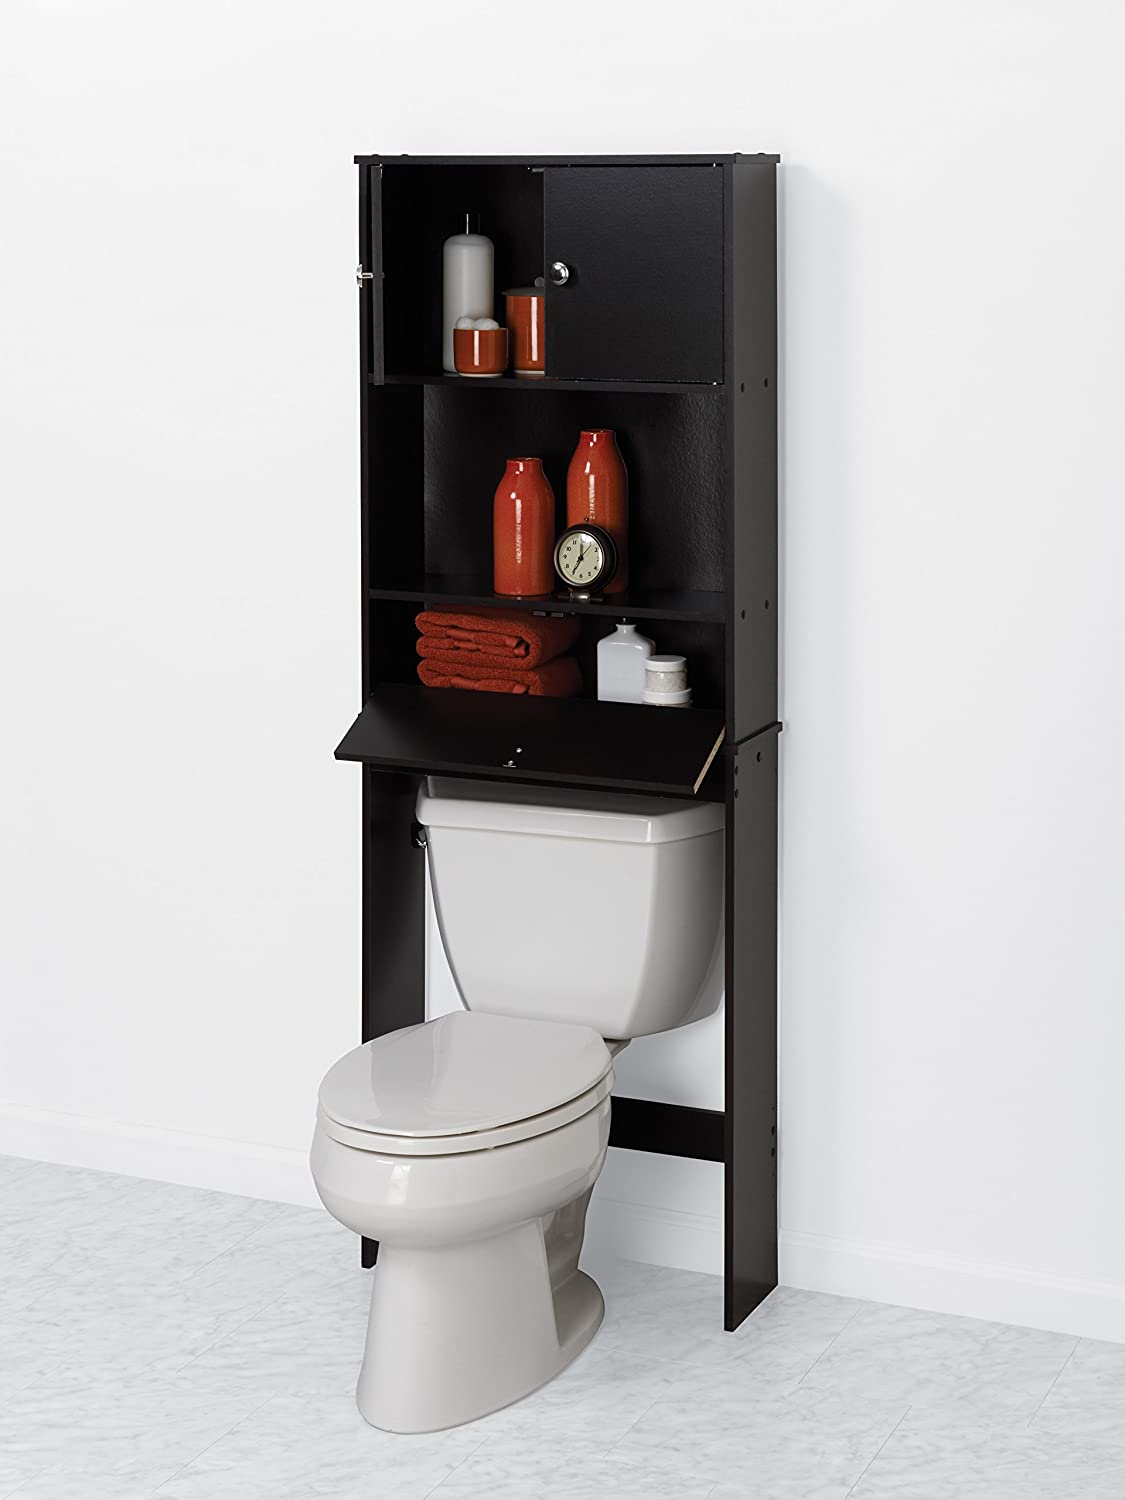 Bathroom Wooden Toilet cabinets/Space savers